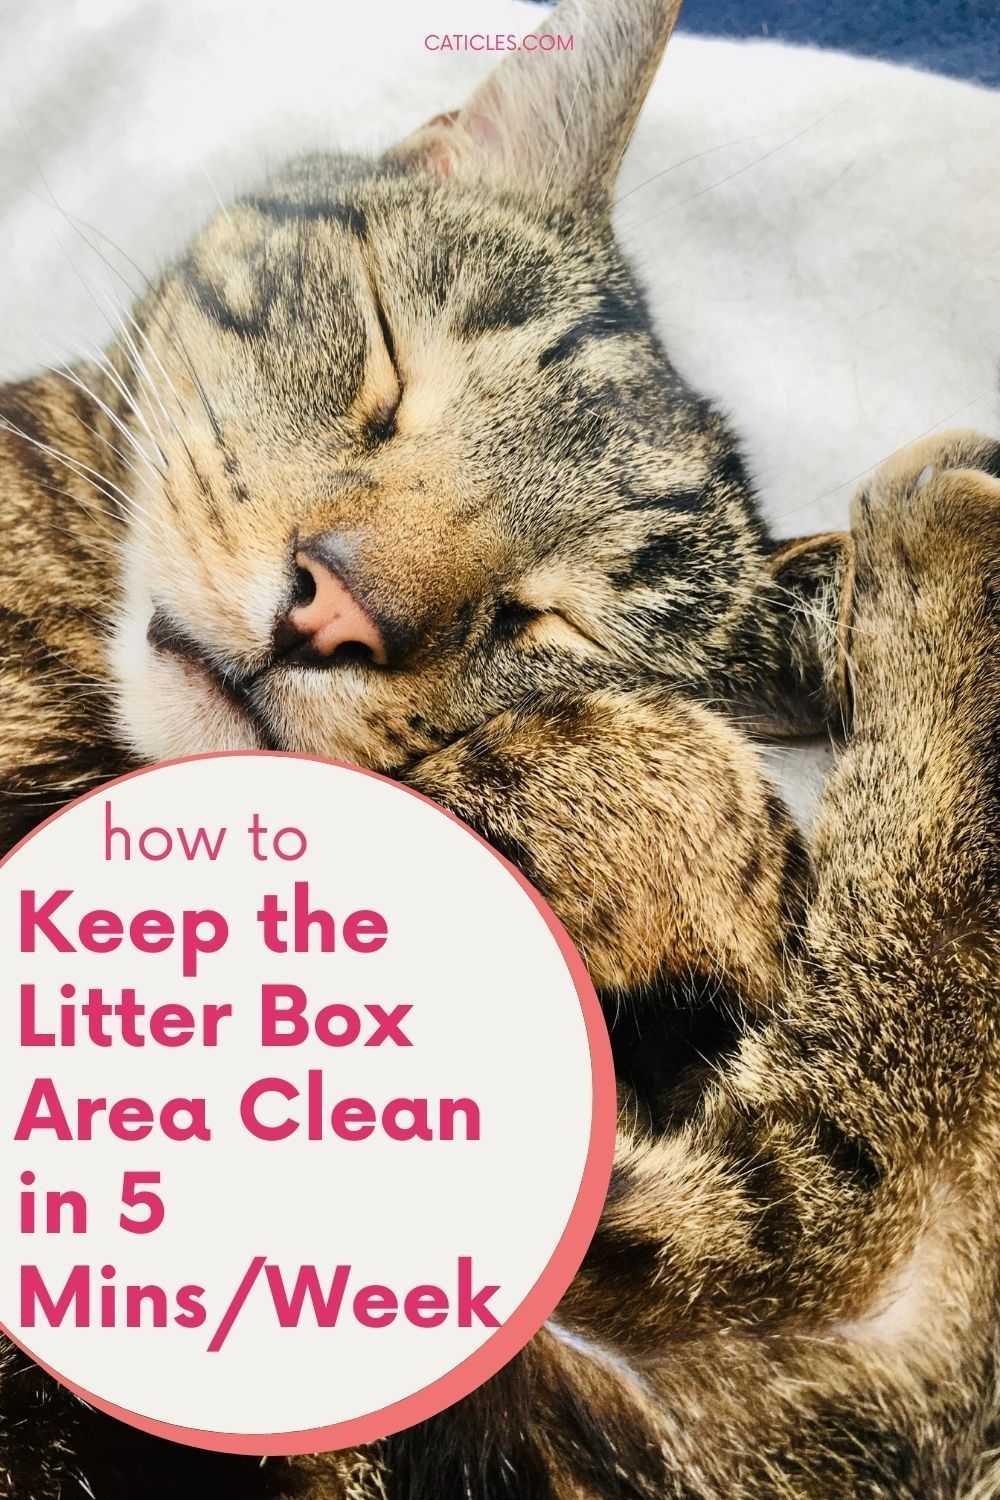 How To Keep Litter Box Area Clean Easily In 5 Mins Week In 2020 Litter Box Cat Parenting Cat Life Hacks